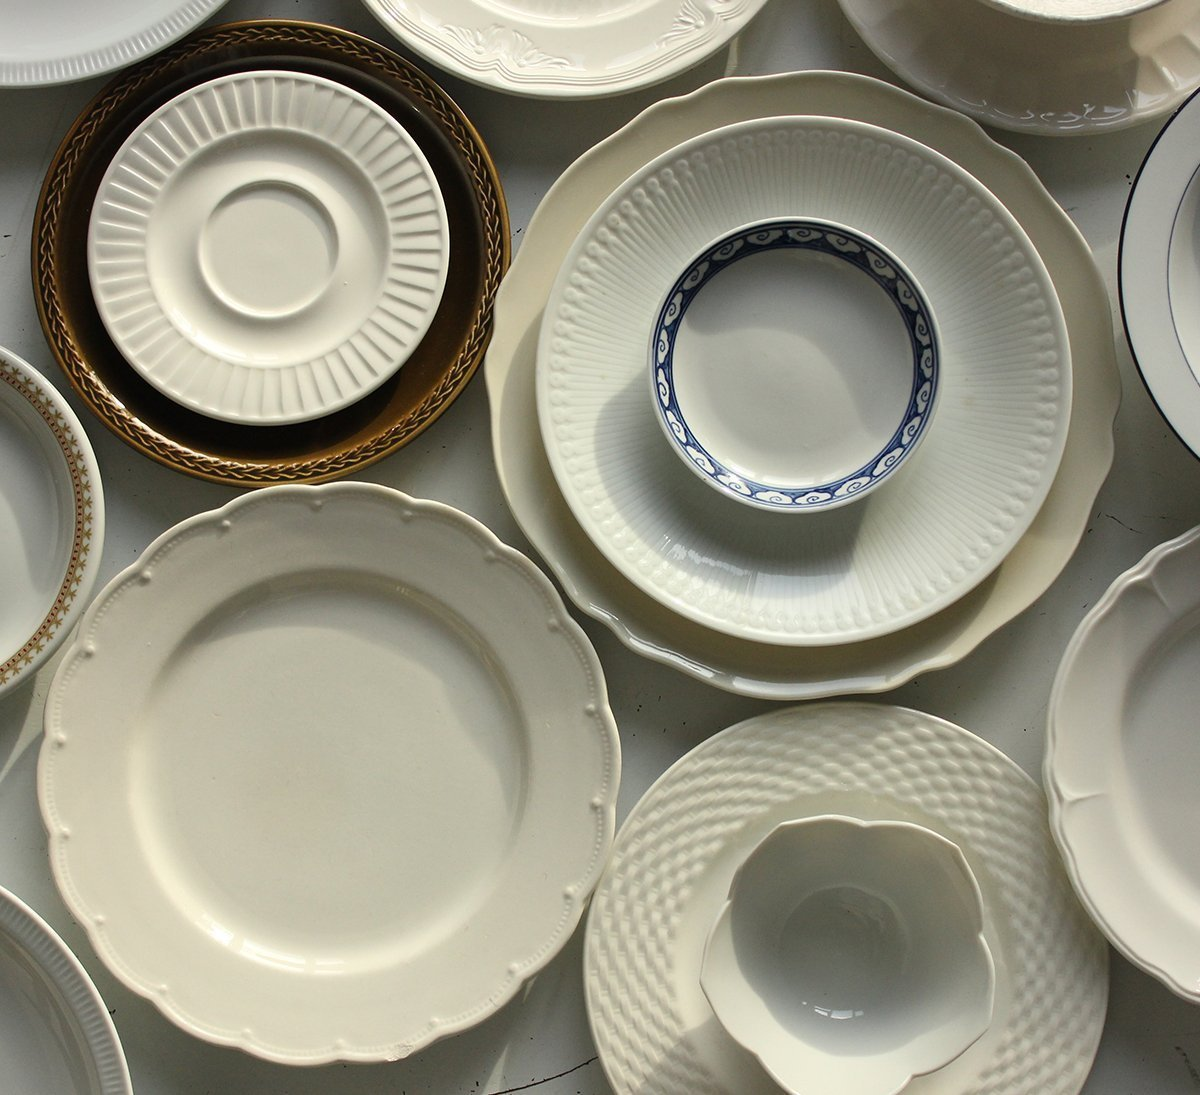 The Dinnerware Brands You Need To Know